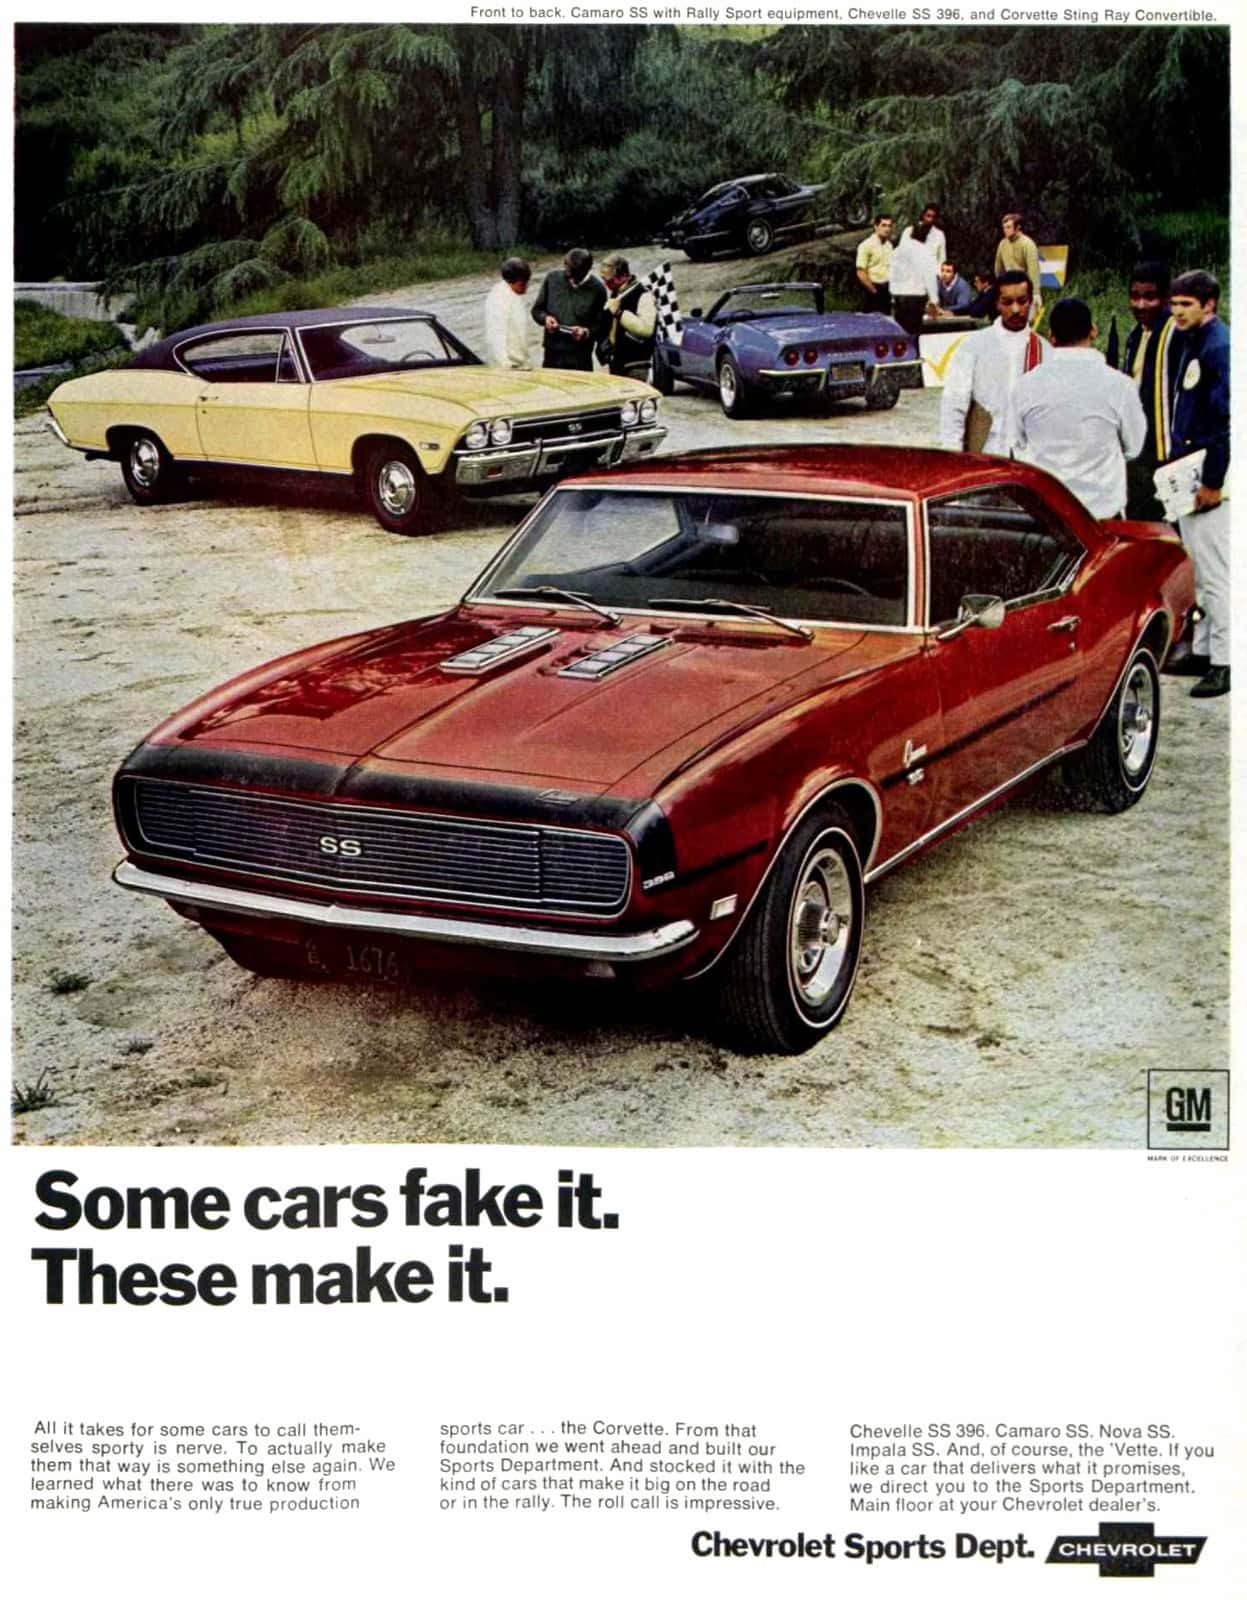 Camaro and other Chevrolet sports cars (June 1968)